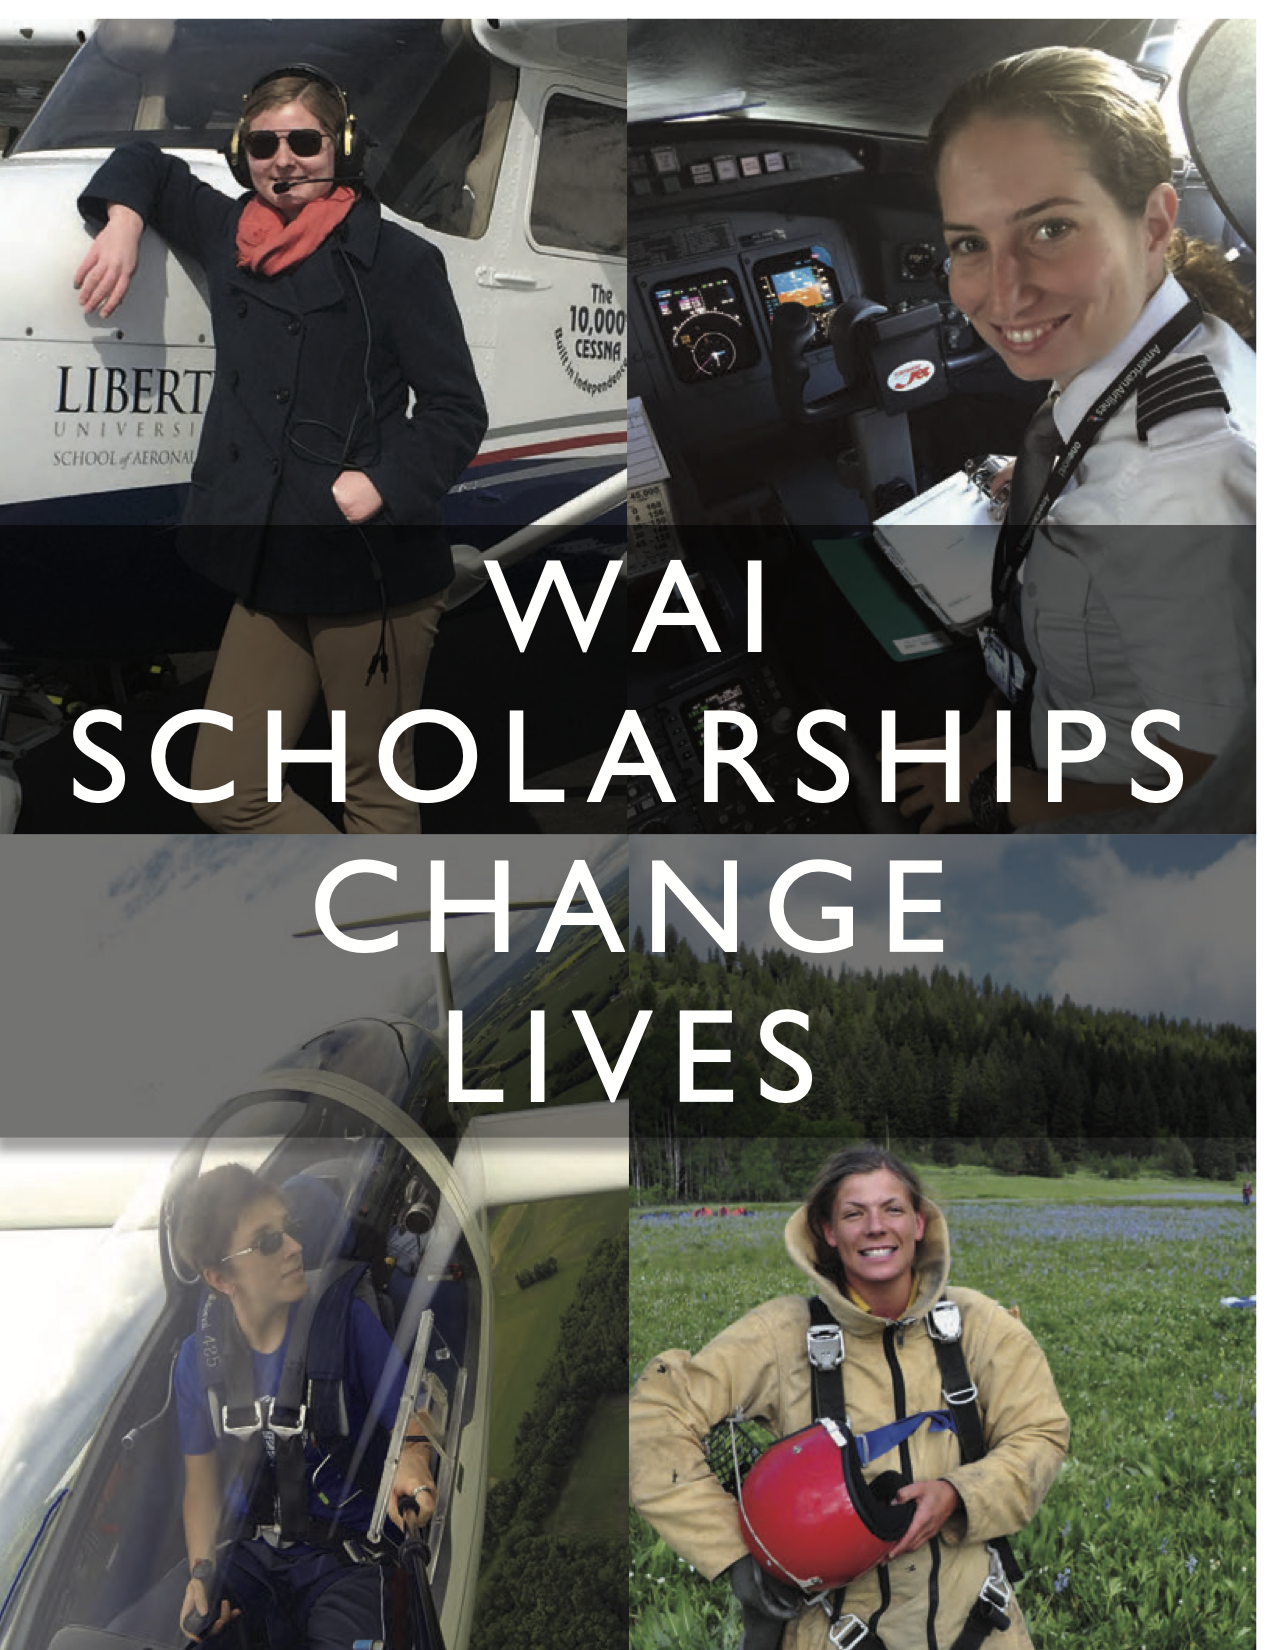 WAI Scholarships